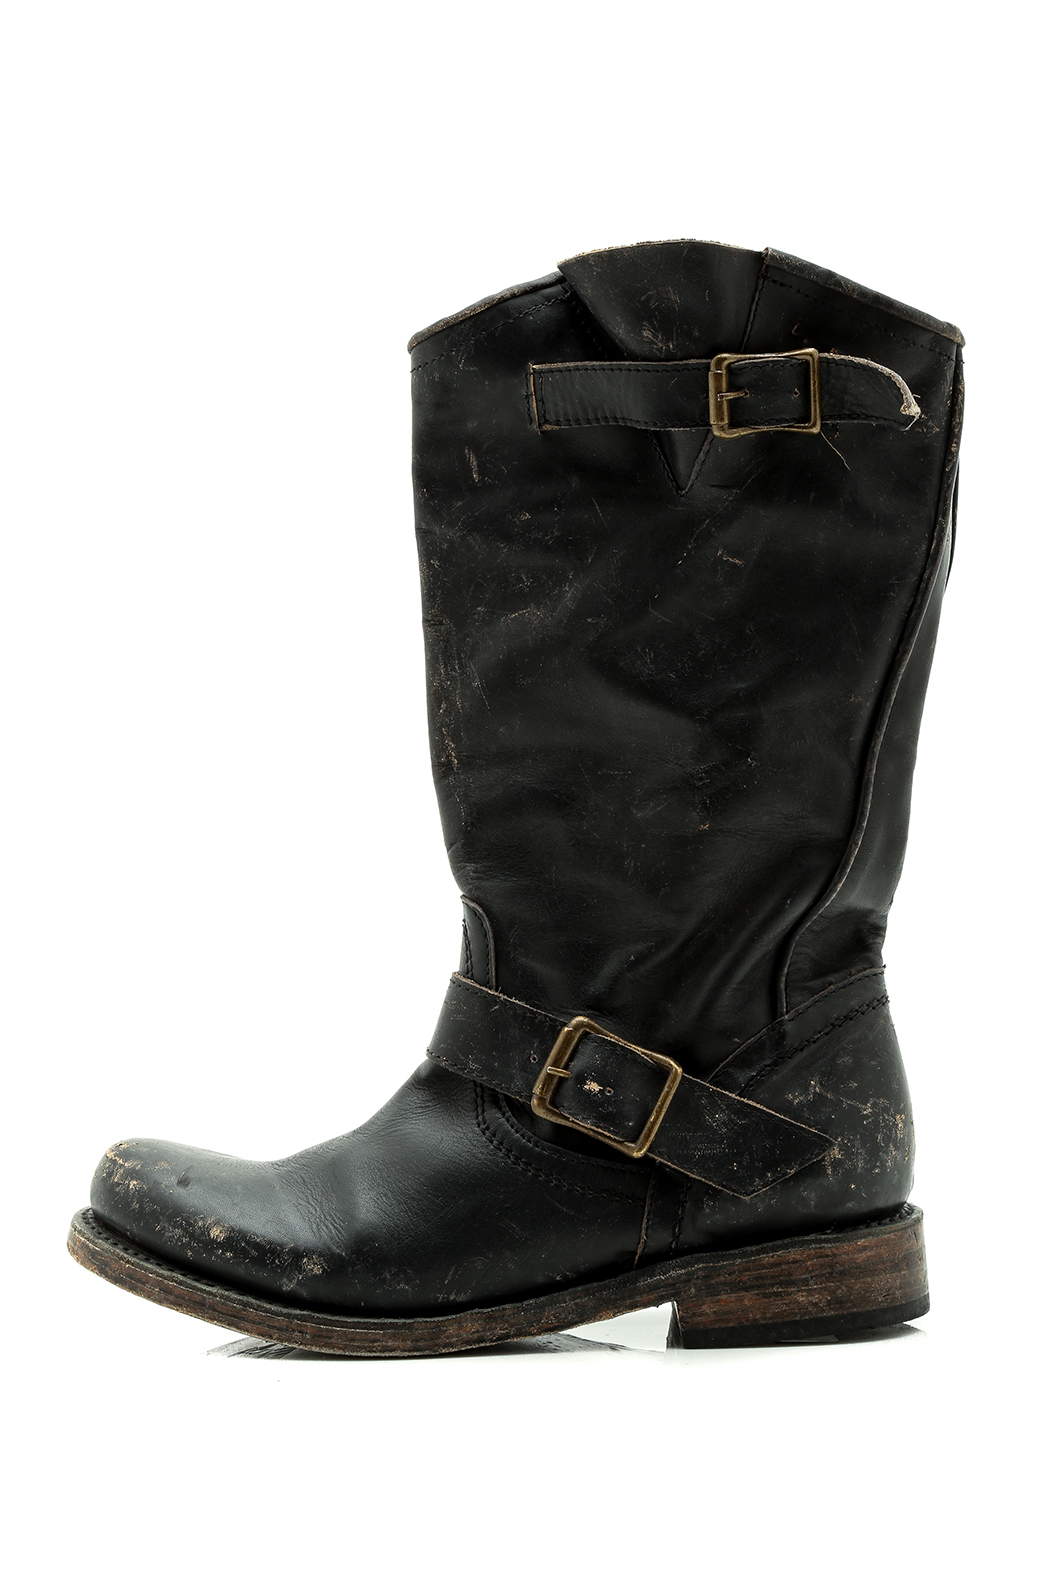 freebird by steven crosby boot from idaho by muse boutique